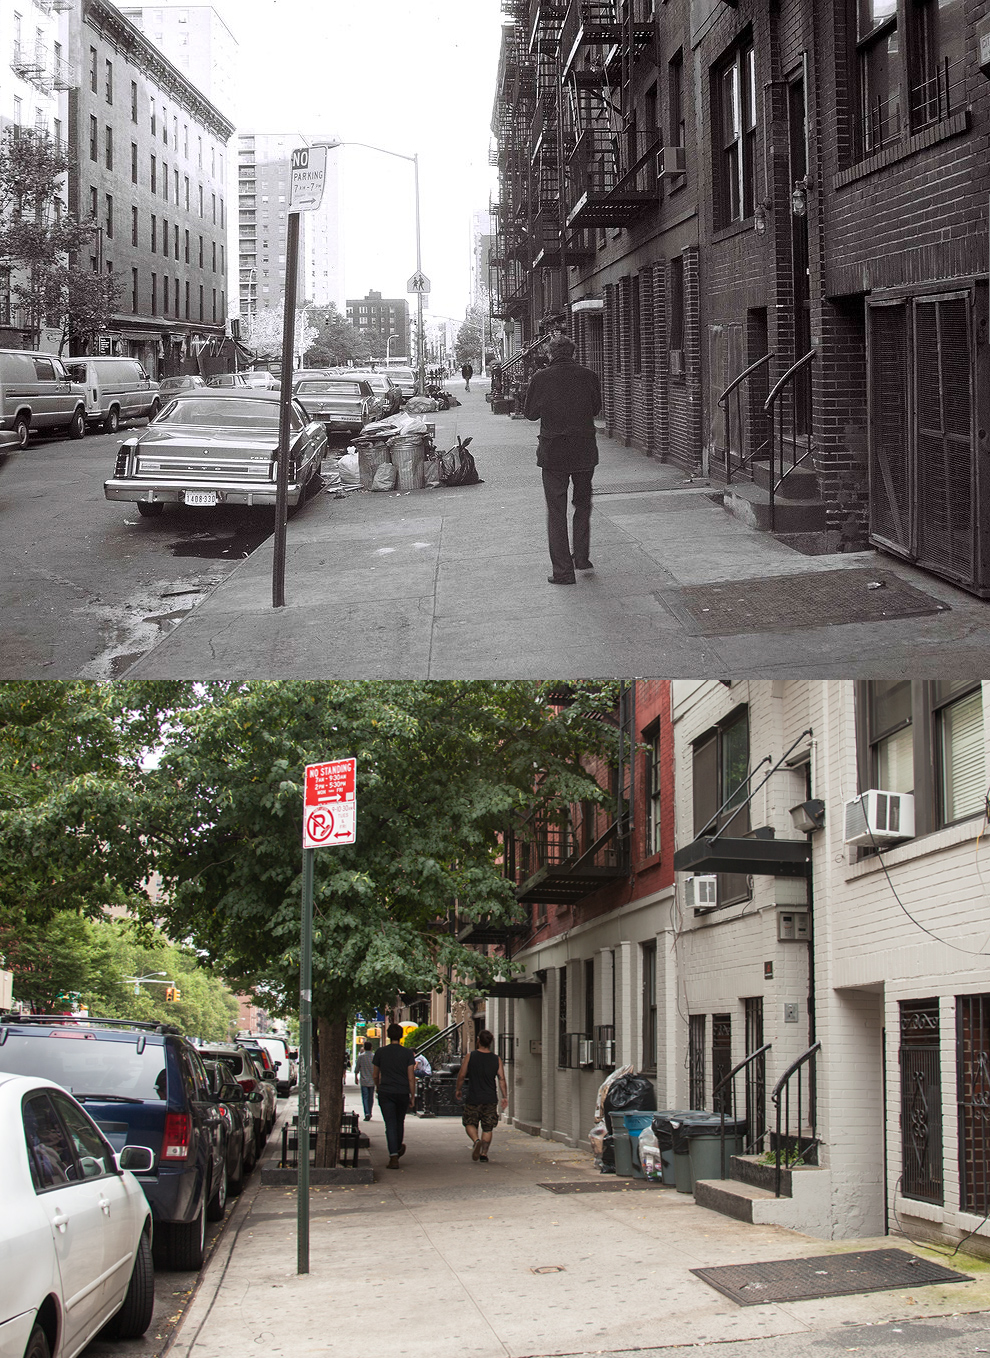 This is the street that I lived on in the late 70's. East 4th Street between 1st and 2nd Avenue. I had a five floor walkup, the entrance is where the white lintel overhangs the doorway.